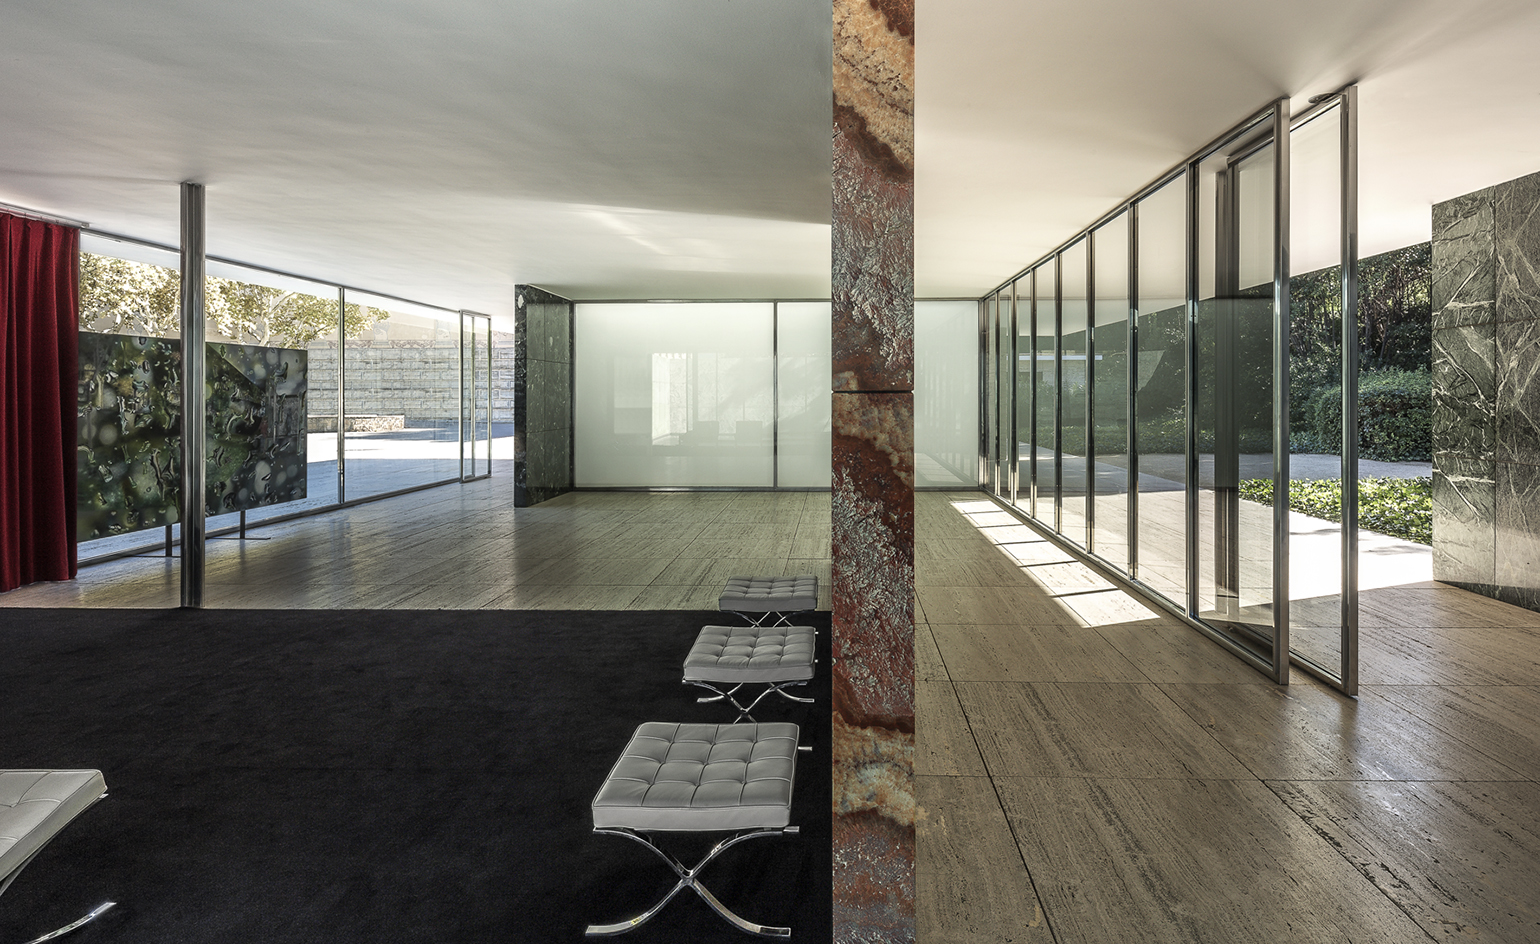 mies van der rohe 39 s barcelona pavilion celebrates 30 years. Black Bedroom Furniture Sets. Home Design Ideas